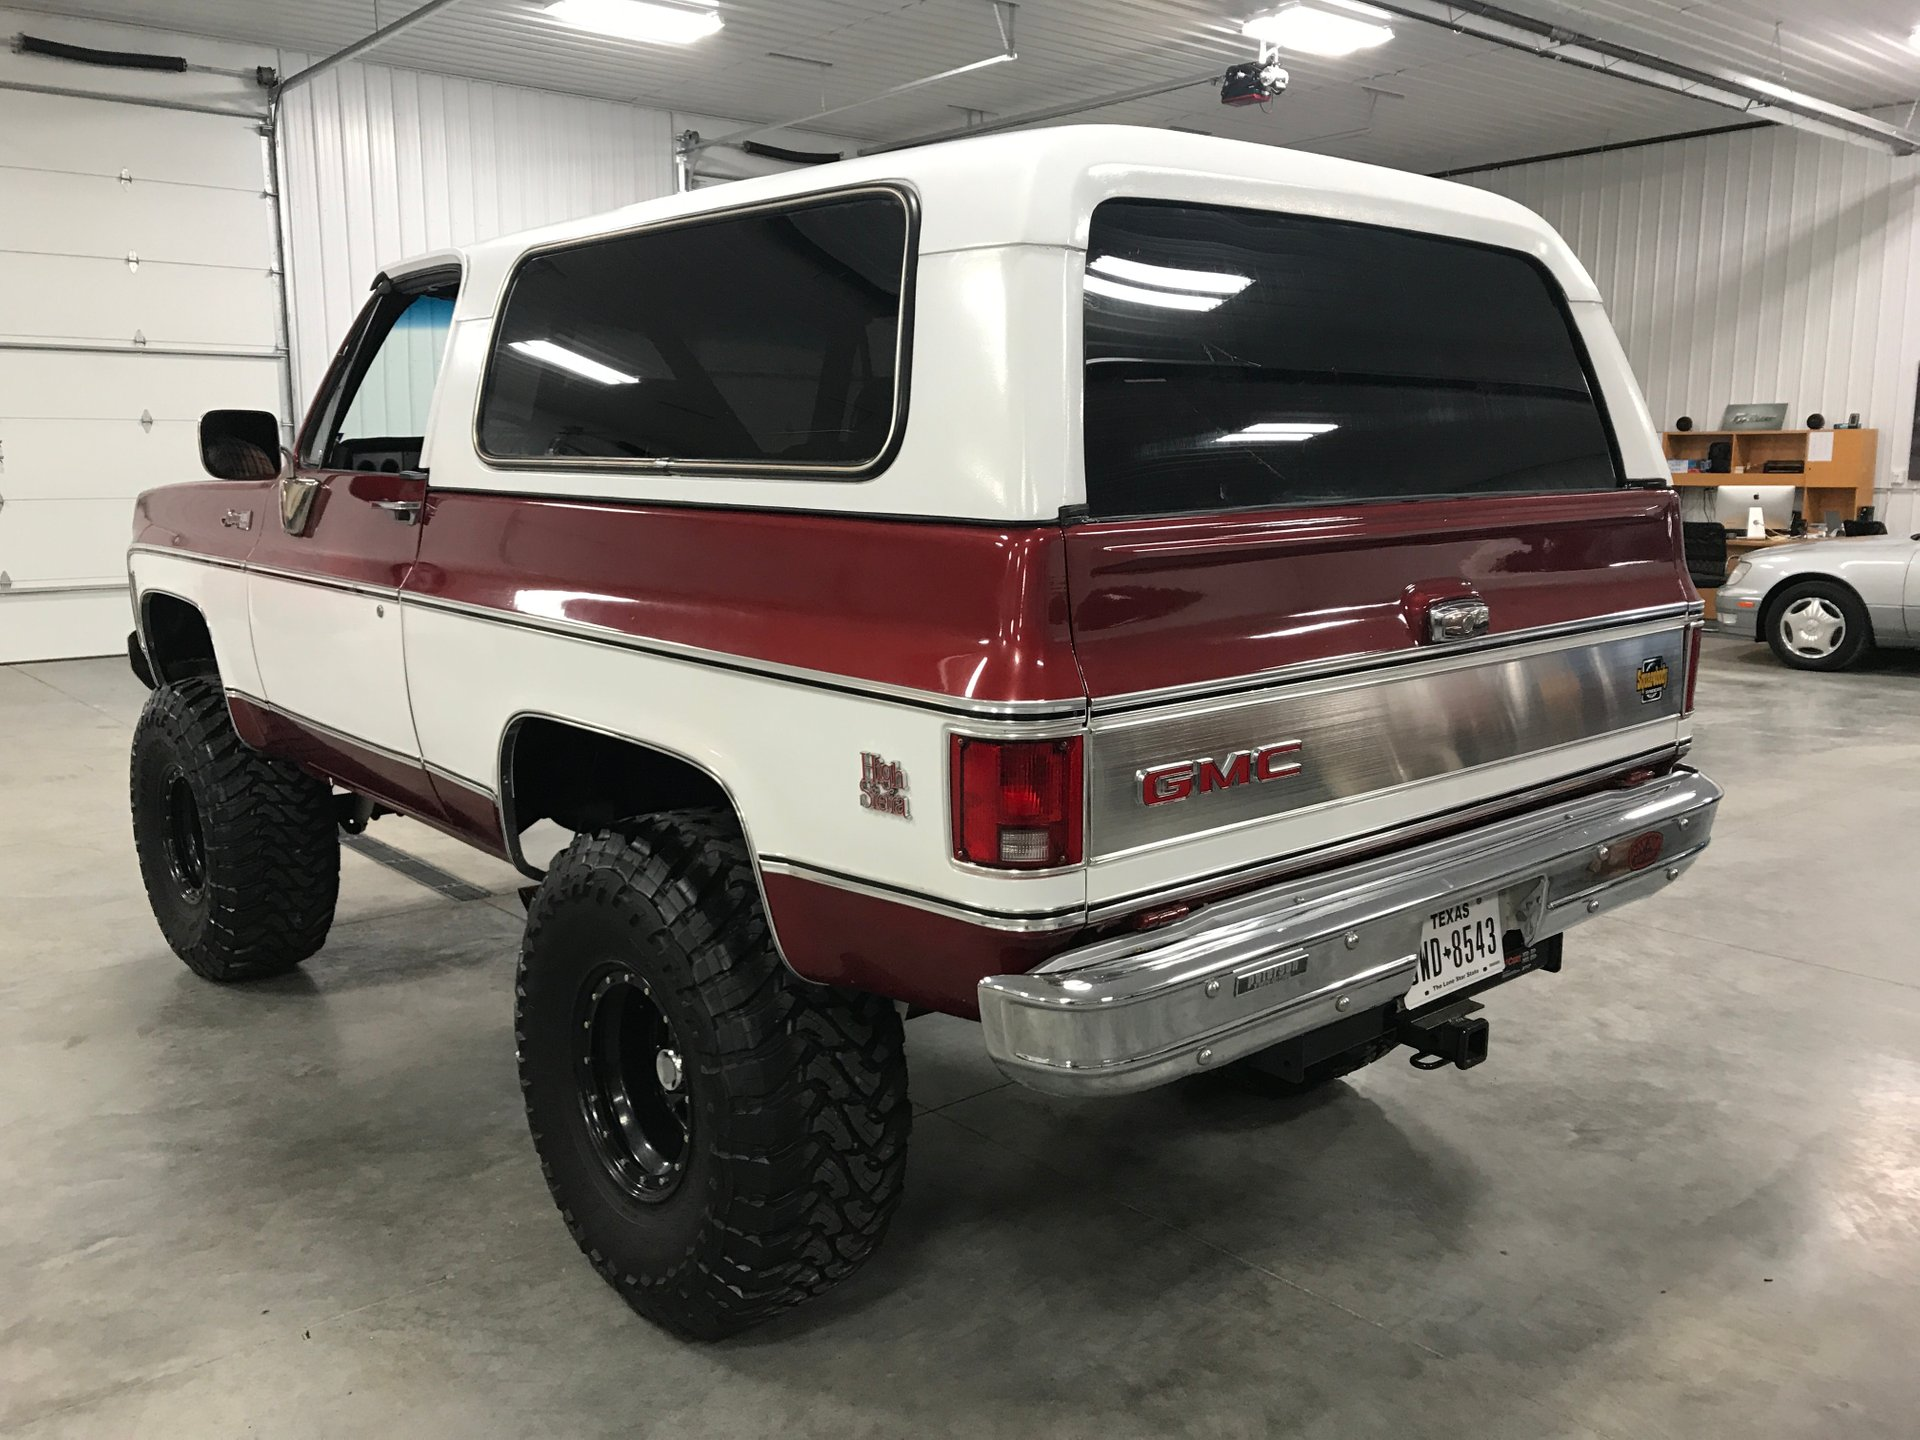 1978 Gmc Jimmy 4 Wheel Classics Classic Car Truck And Suv Sales